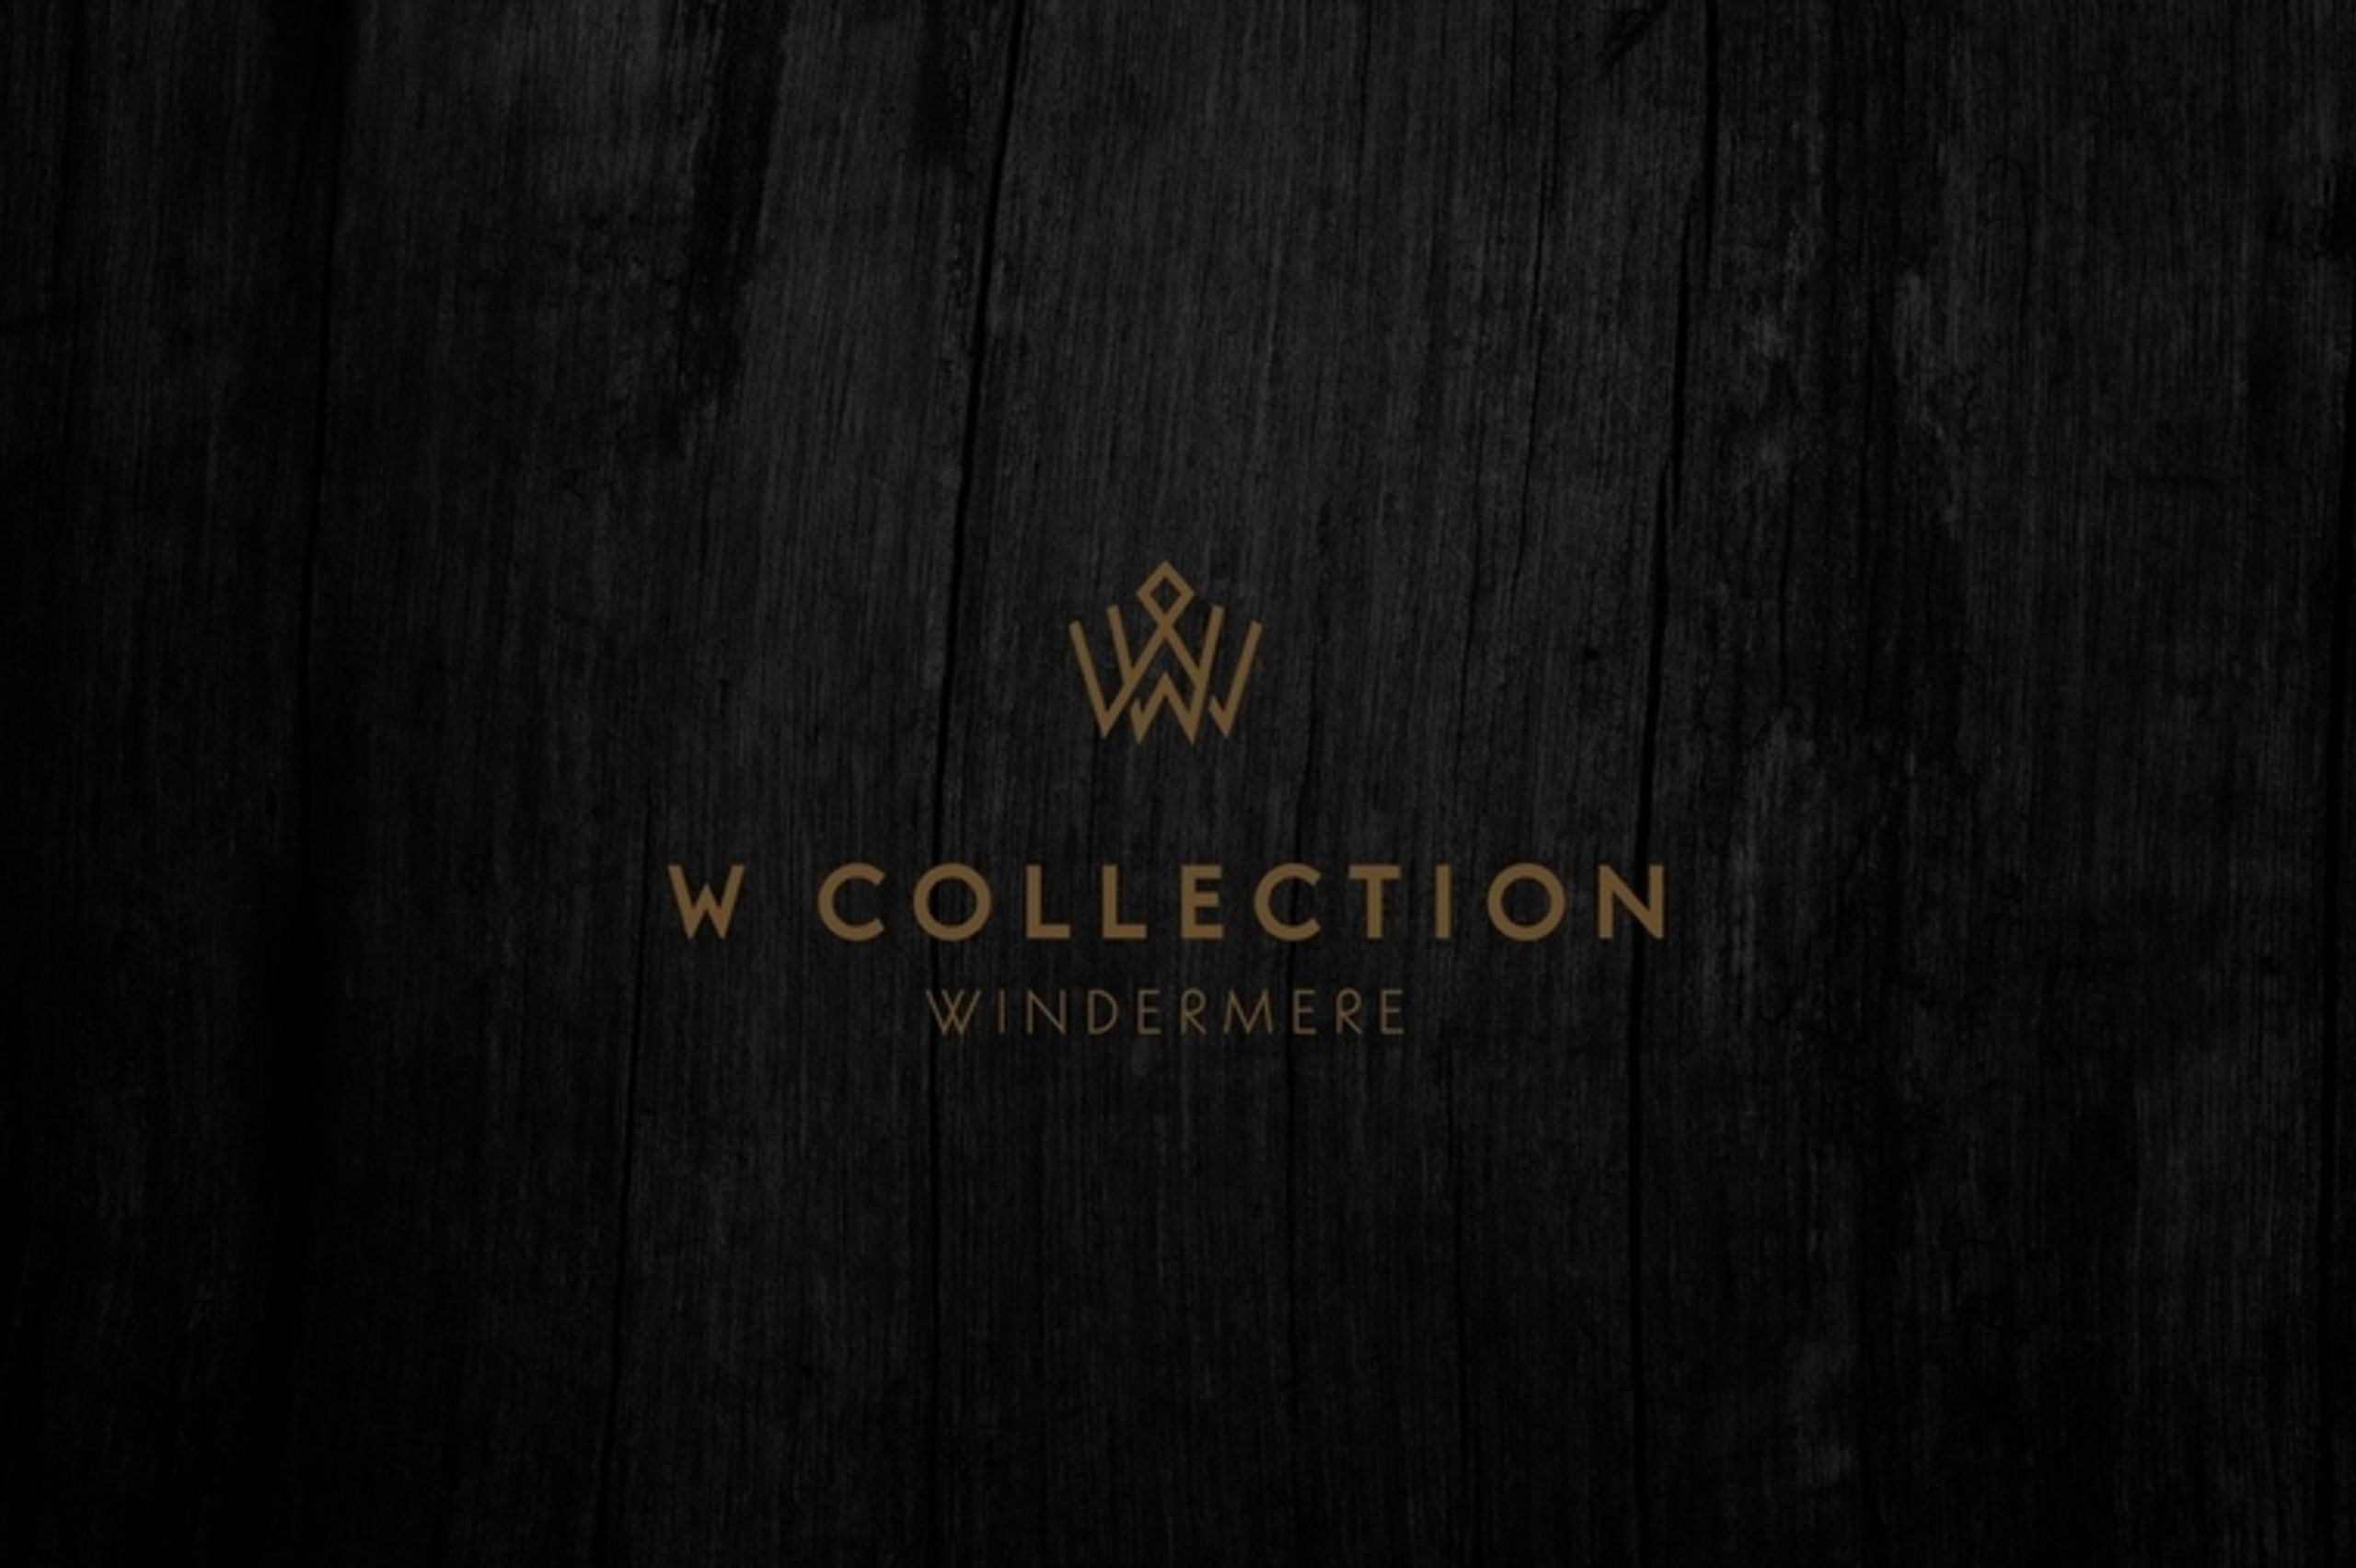 Windermere Launches New Ultra-Luxury Brand: W Collection